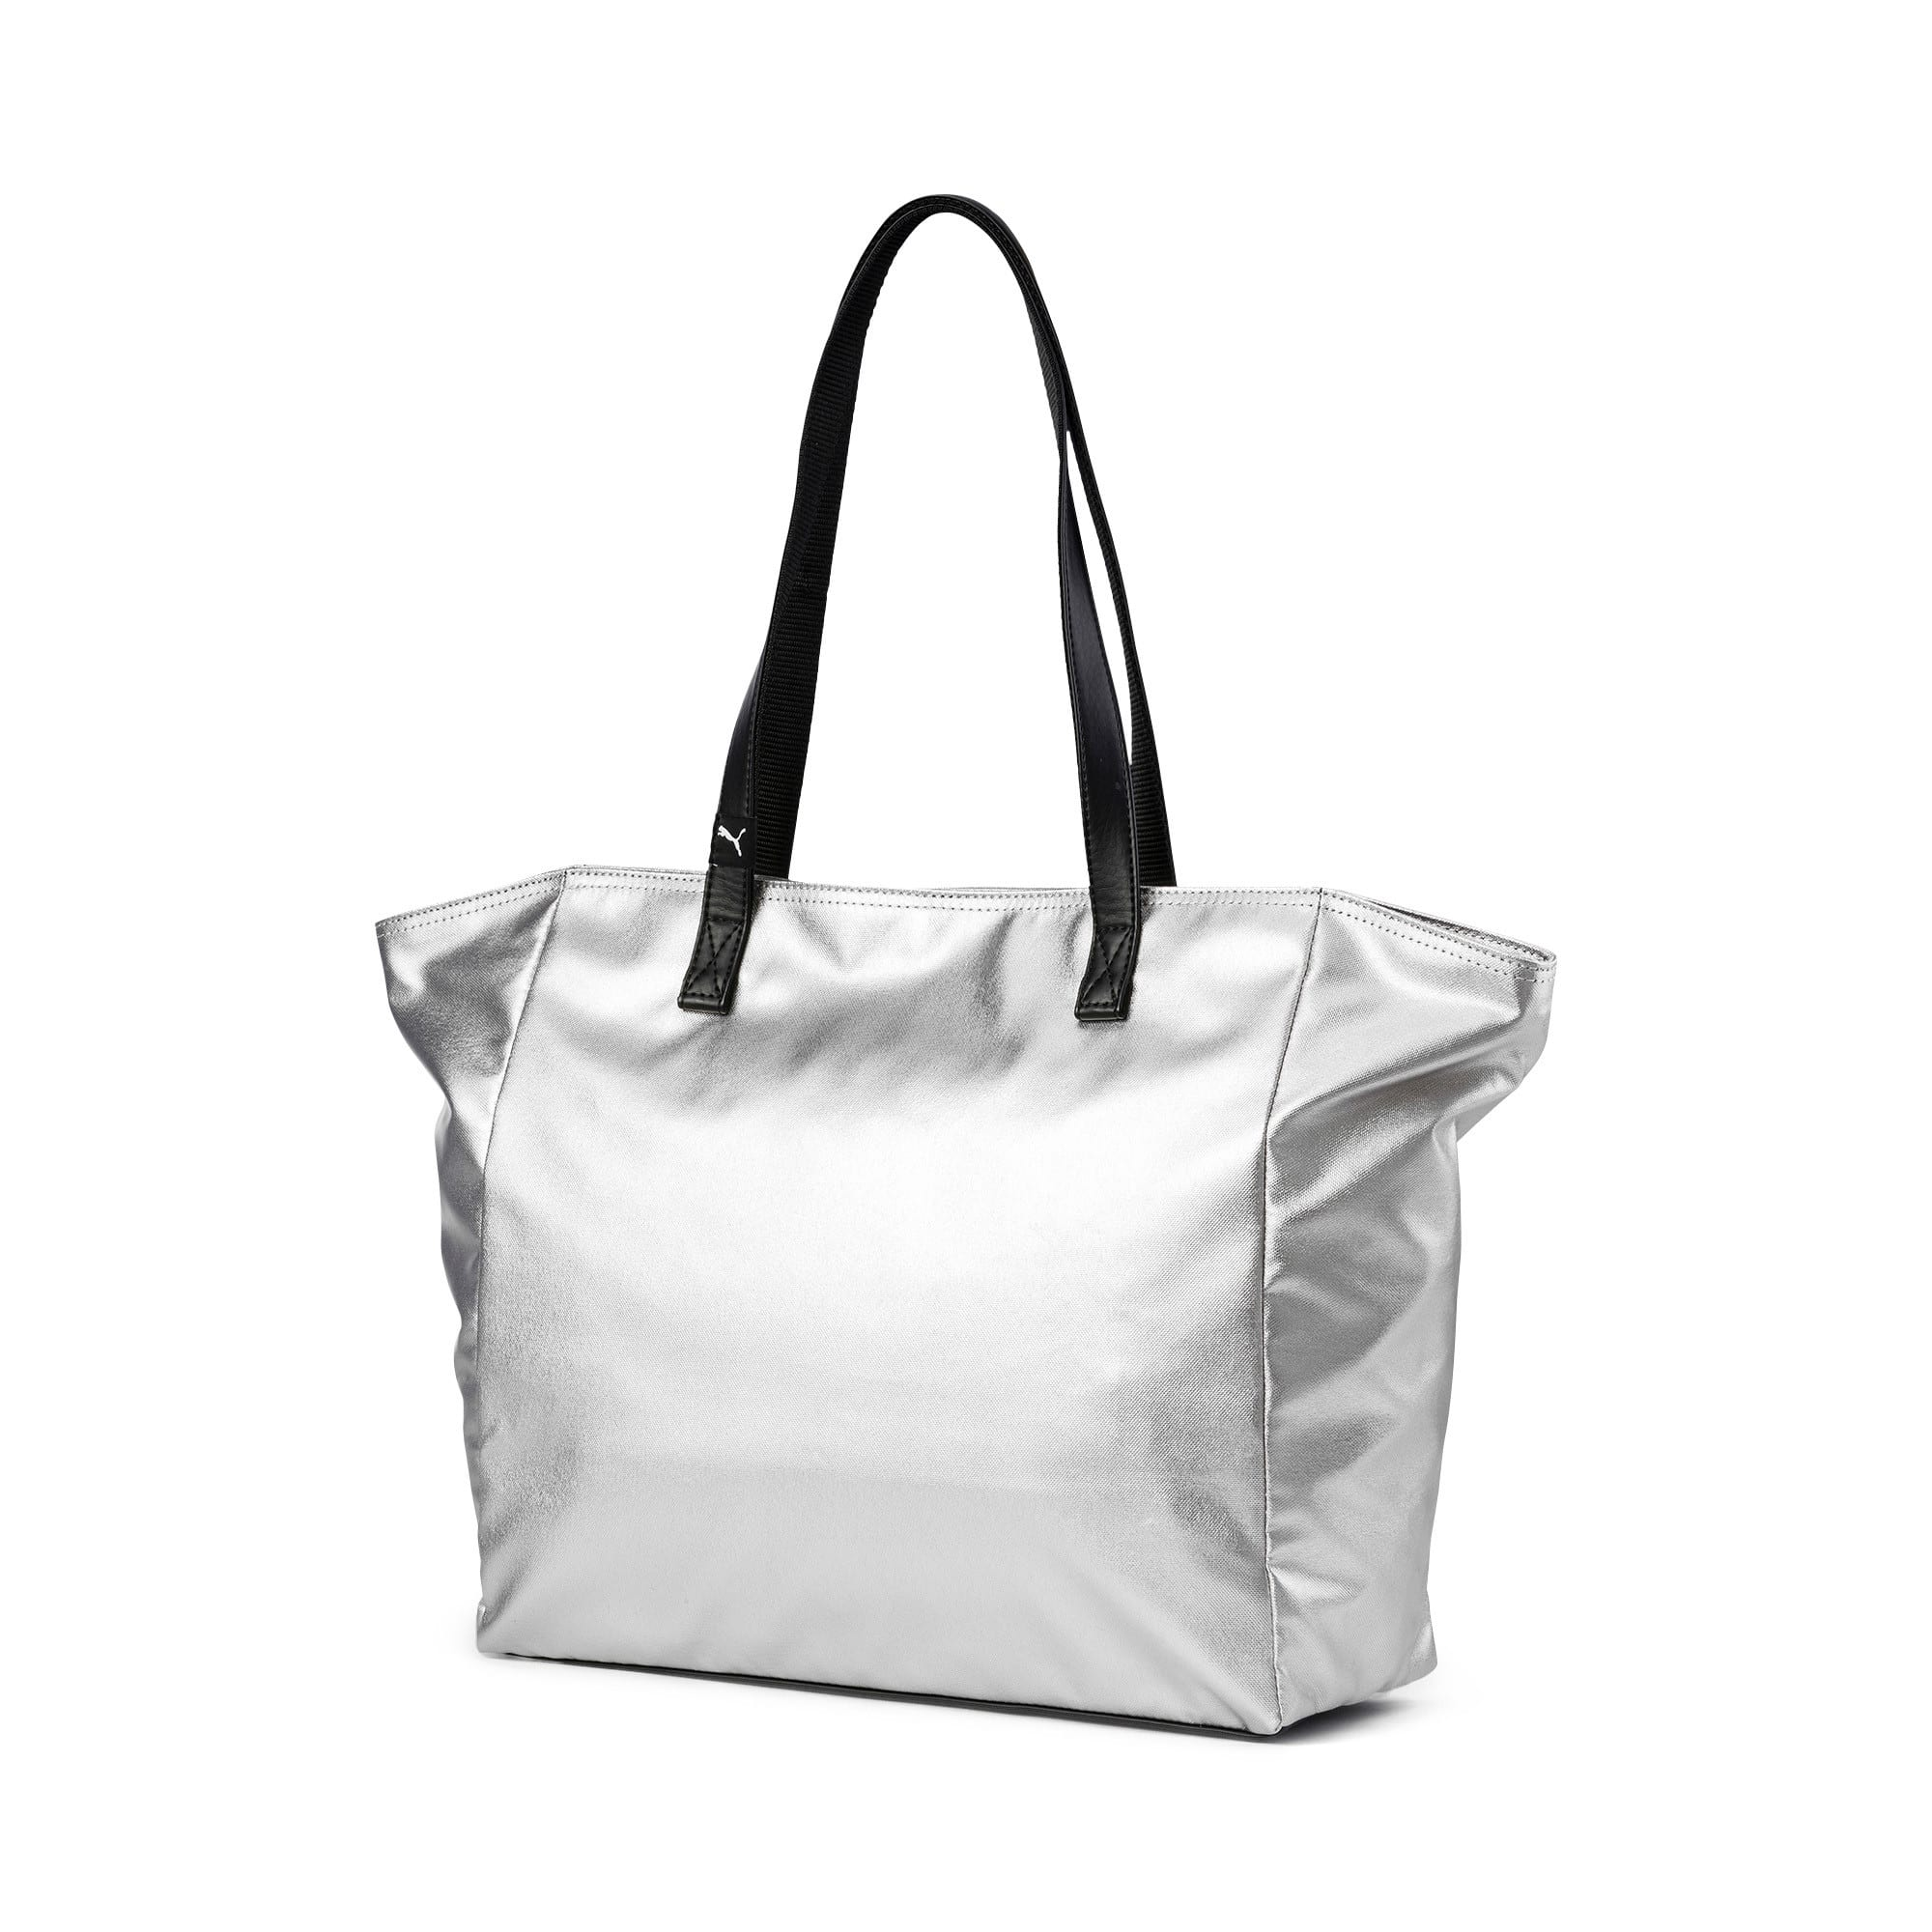 Thumbnail 3 of Time Women's Large Shopper, Silver-Puma Black, medium-IND